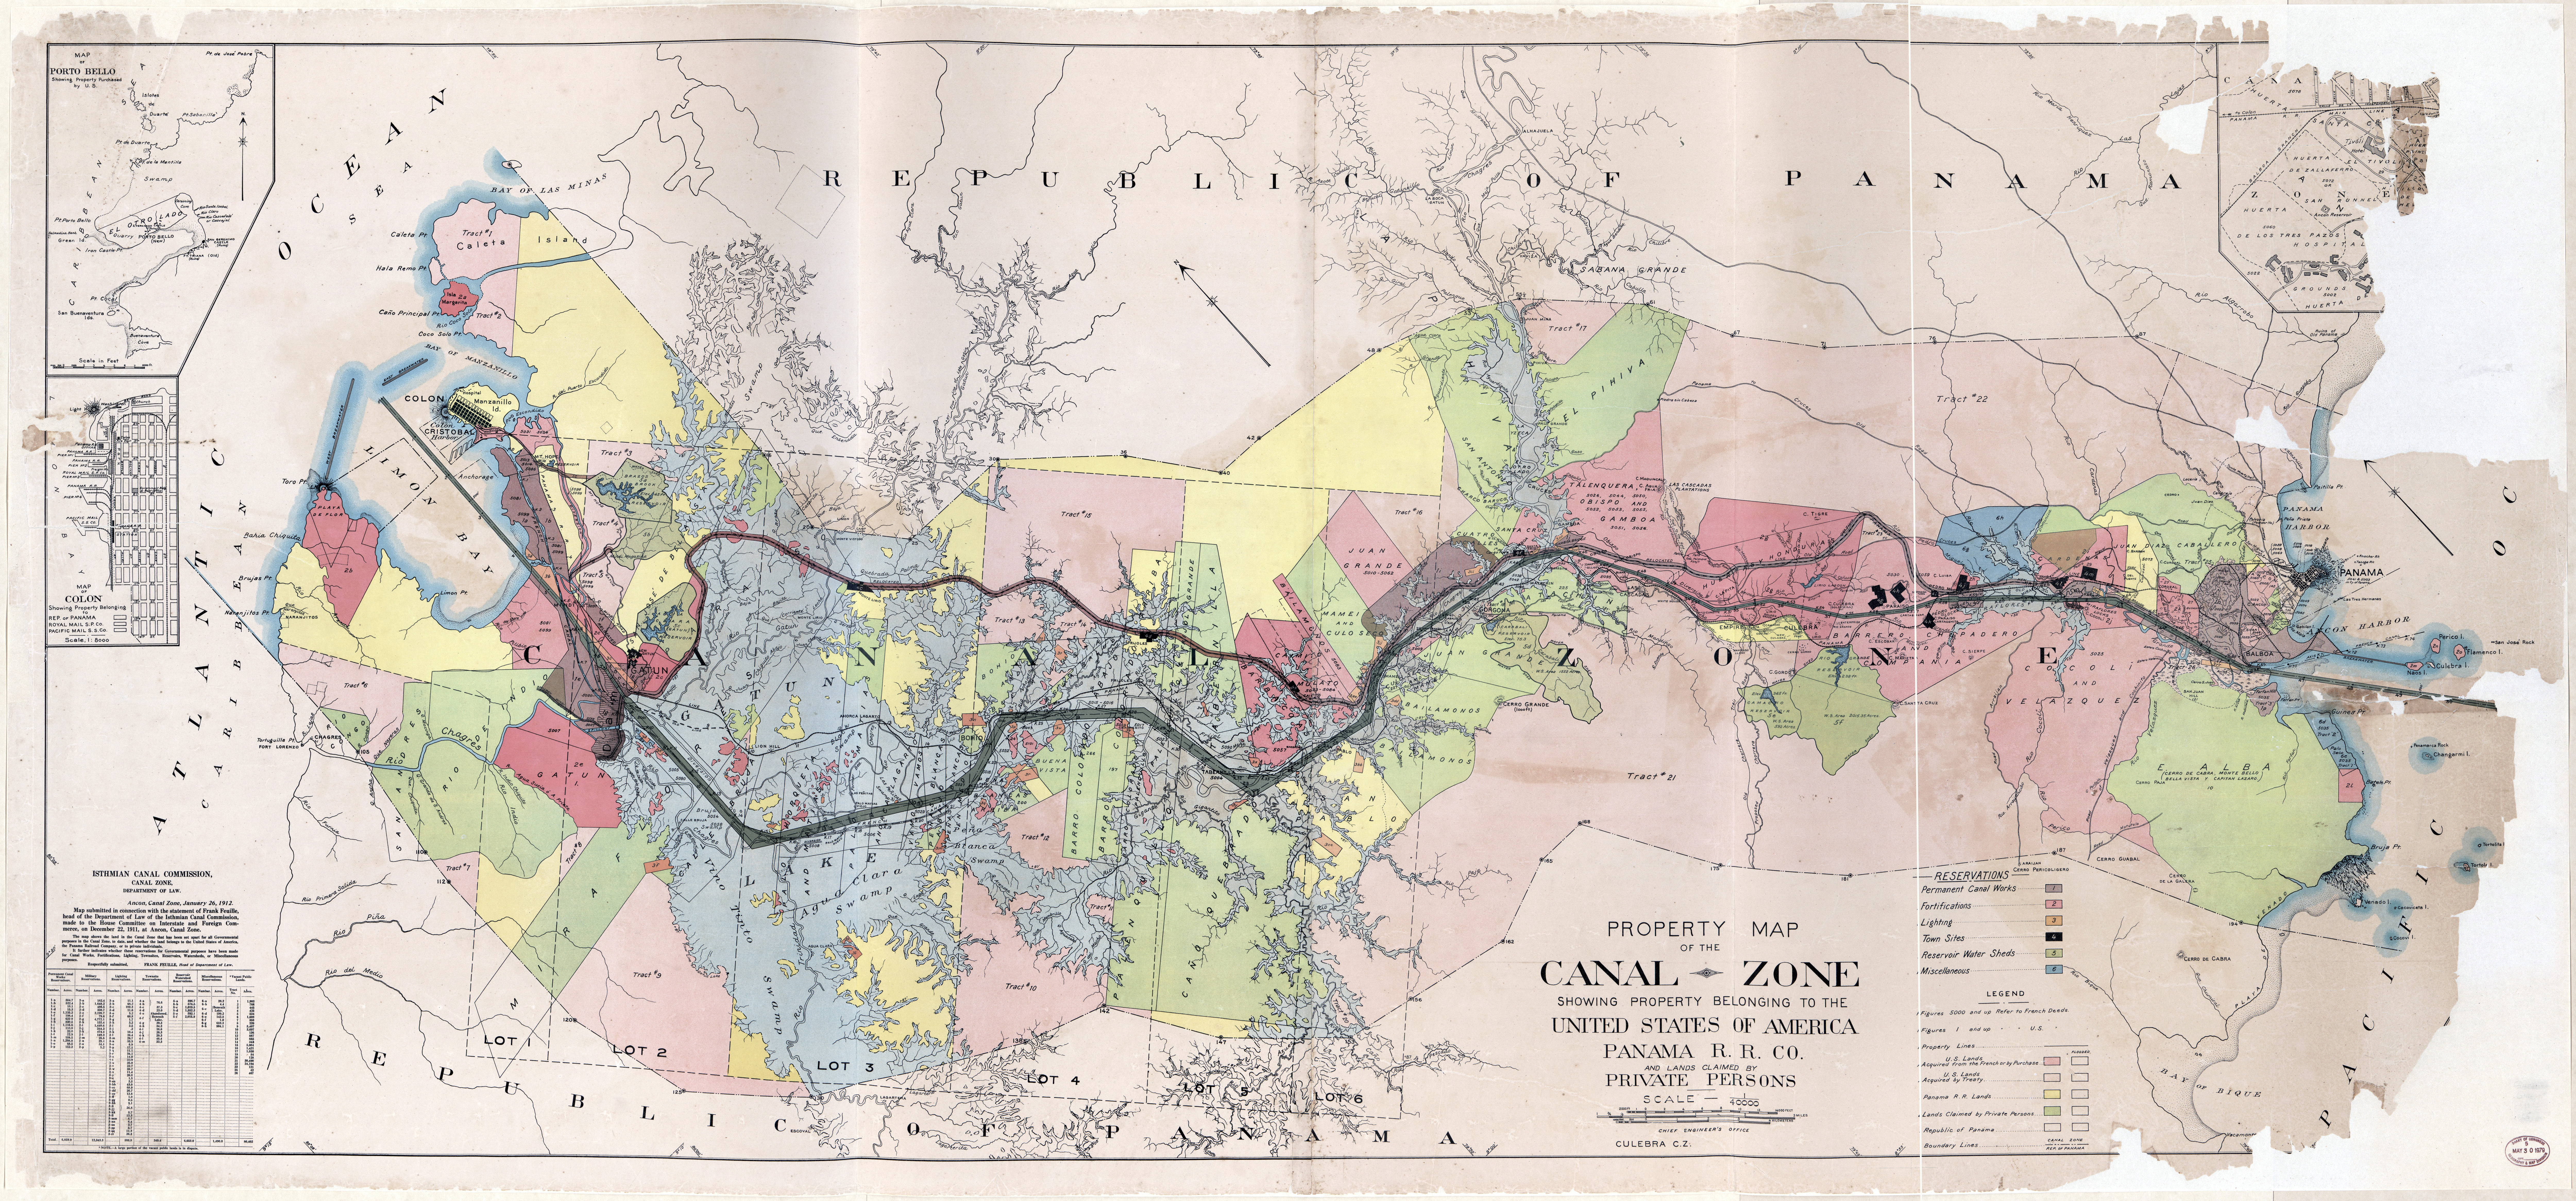 Large scale detailed old property map of the Panama canal zone ...